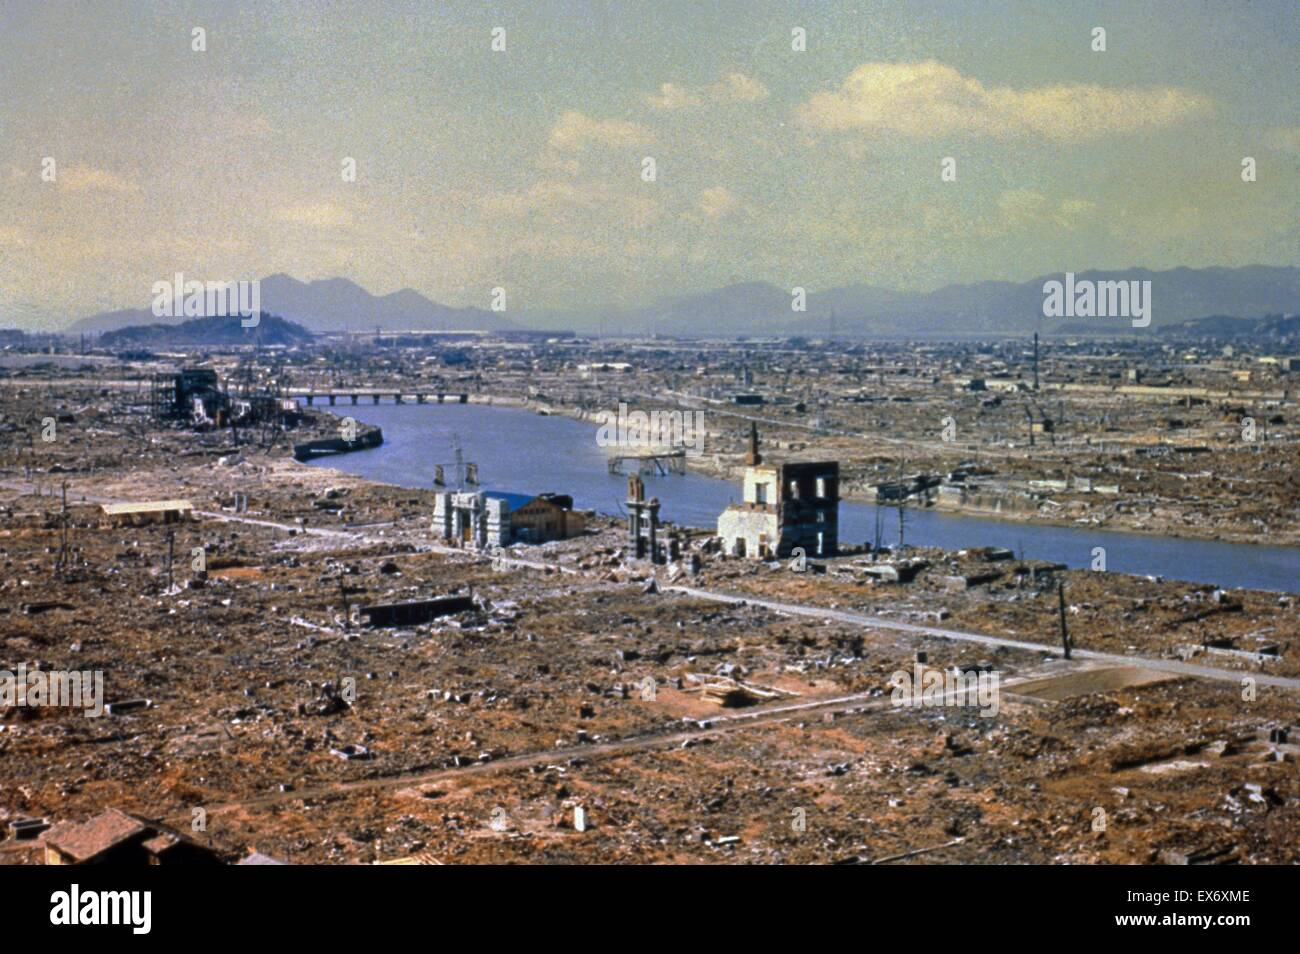 World War Two destruction after the atomic bomb was dropped on Hiroshima 1945 - Stock Image